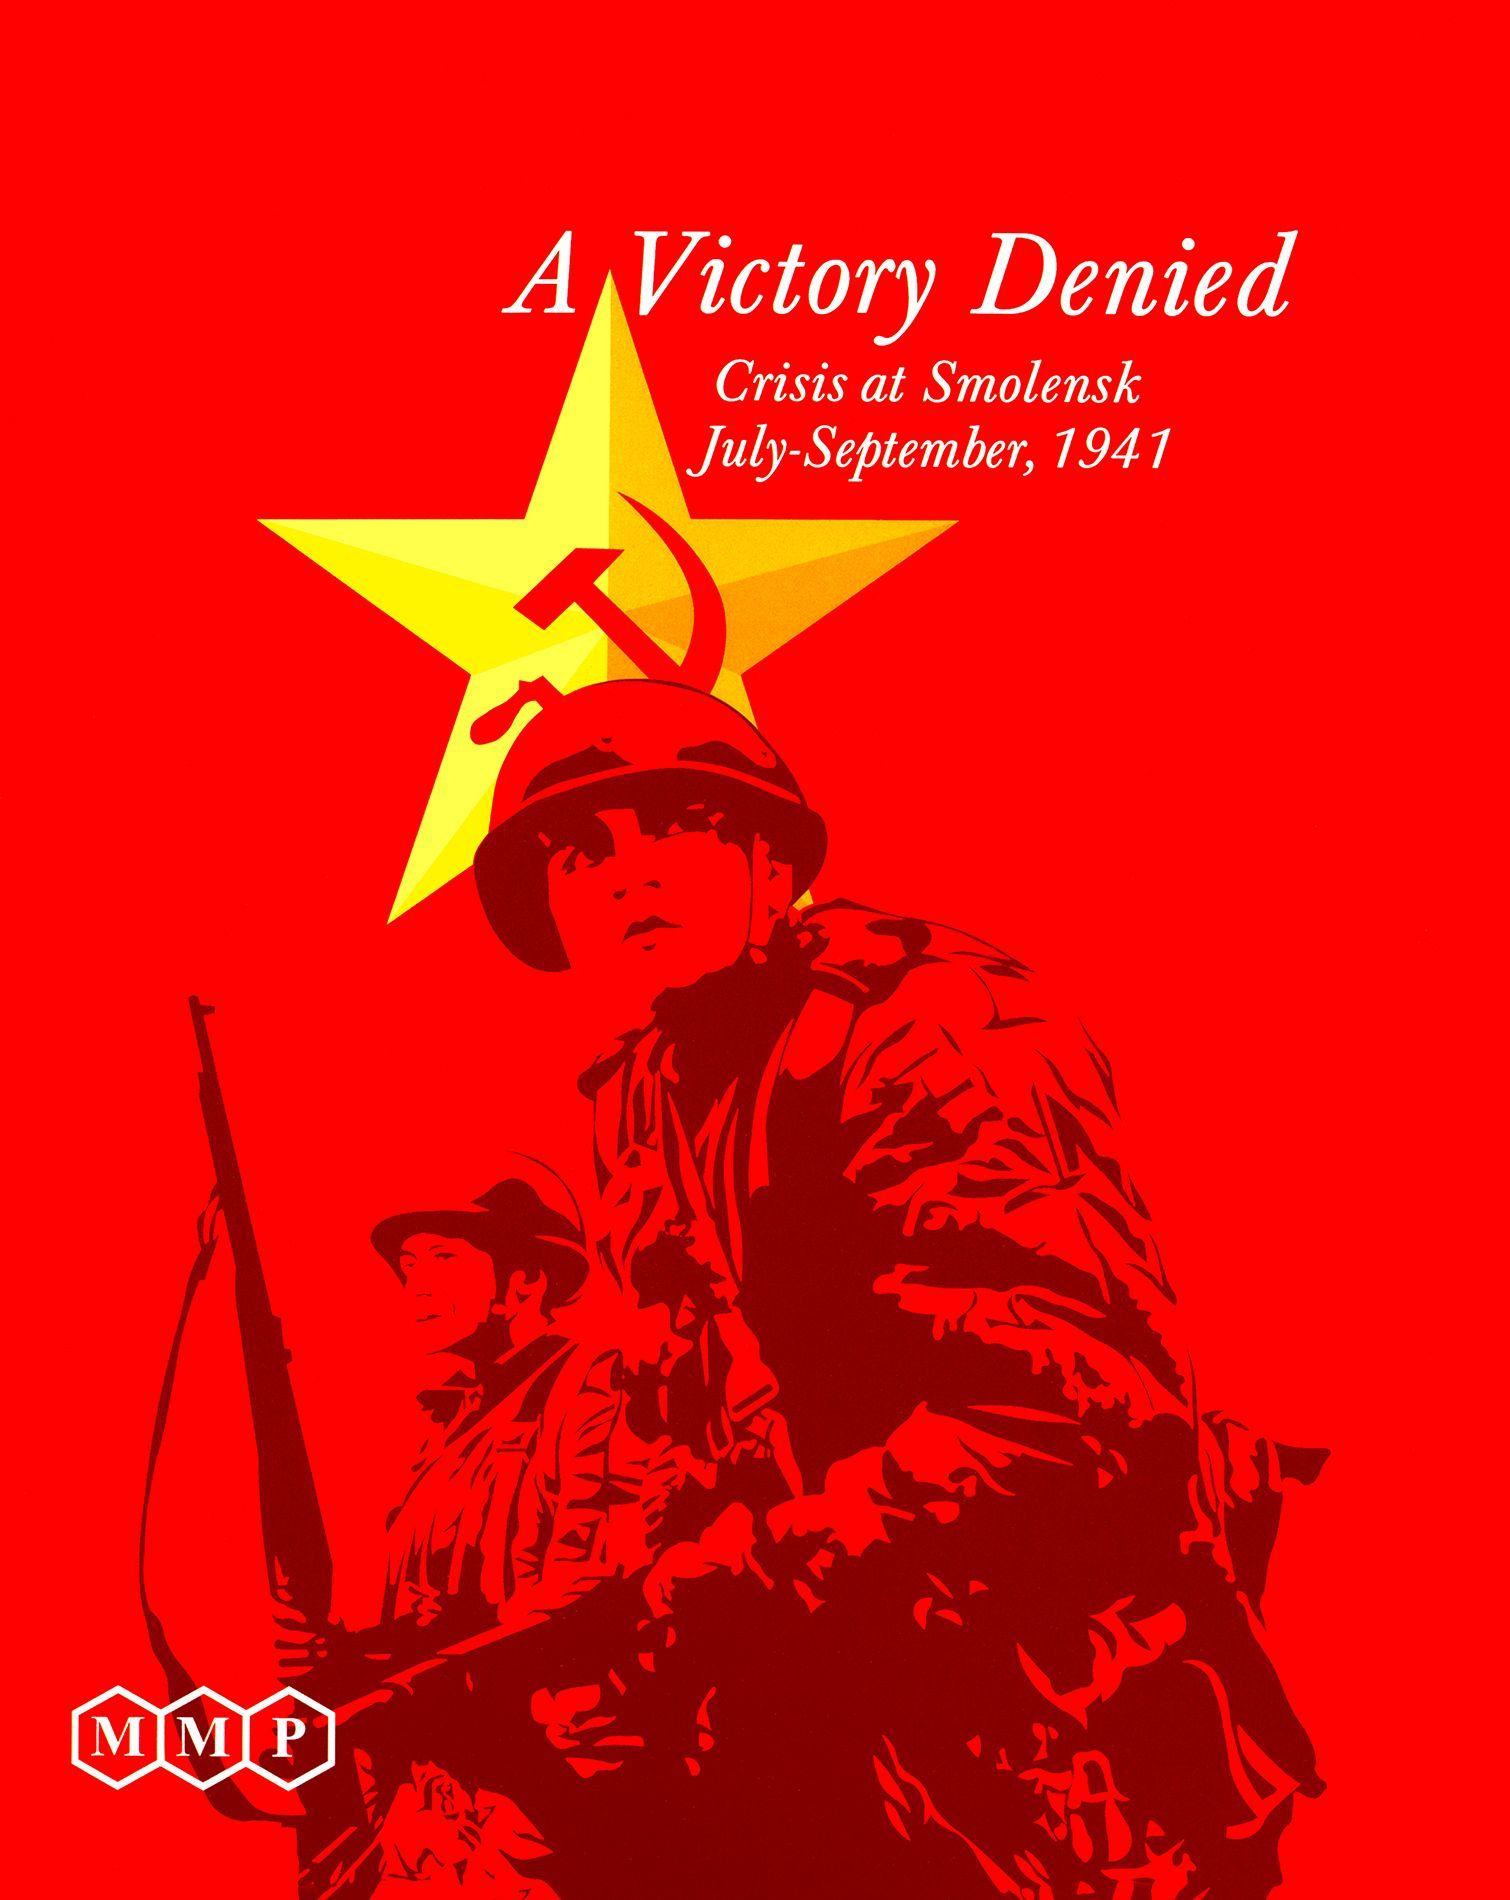 A Victory Denied: Crisis at Smolensk, July-September, 1941